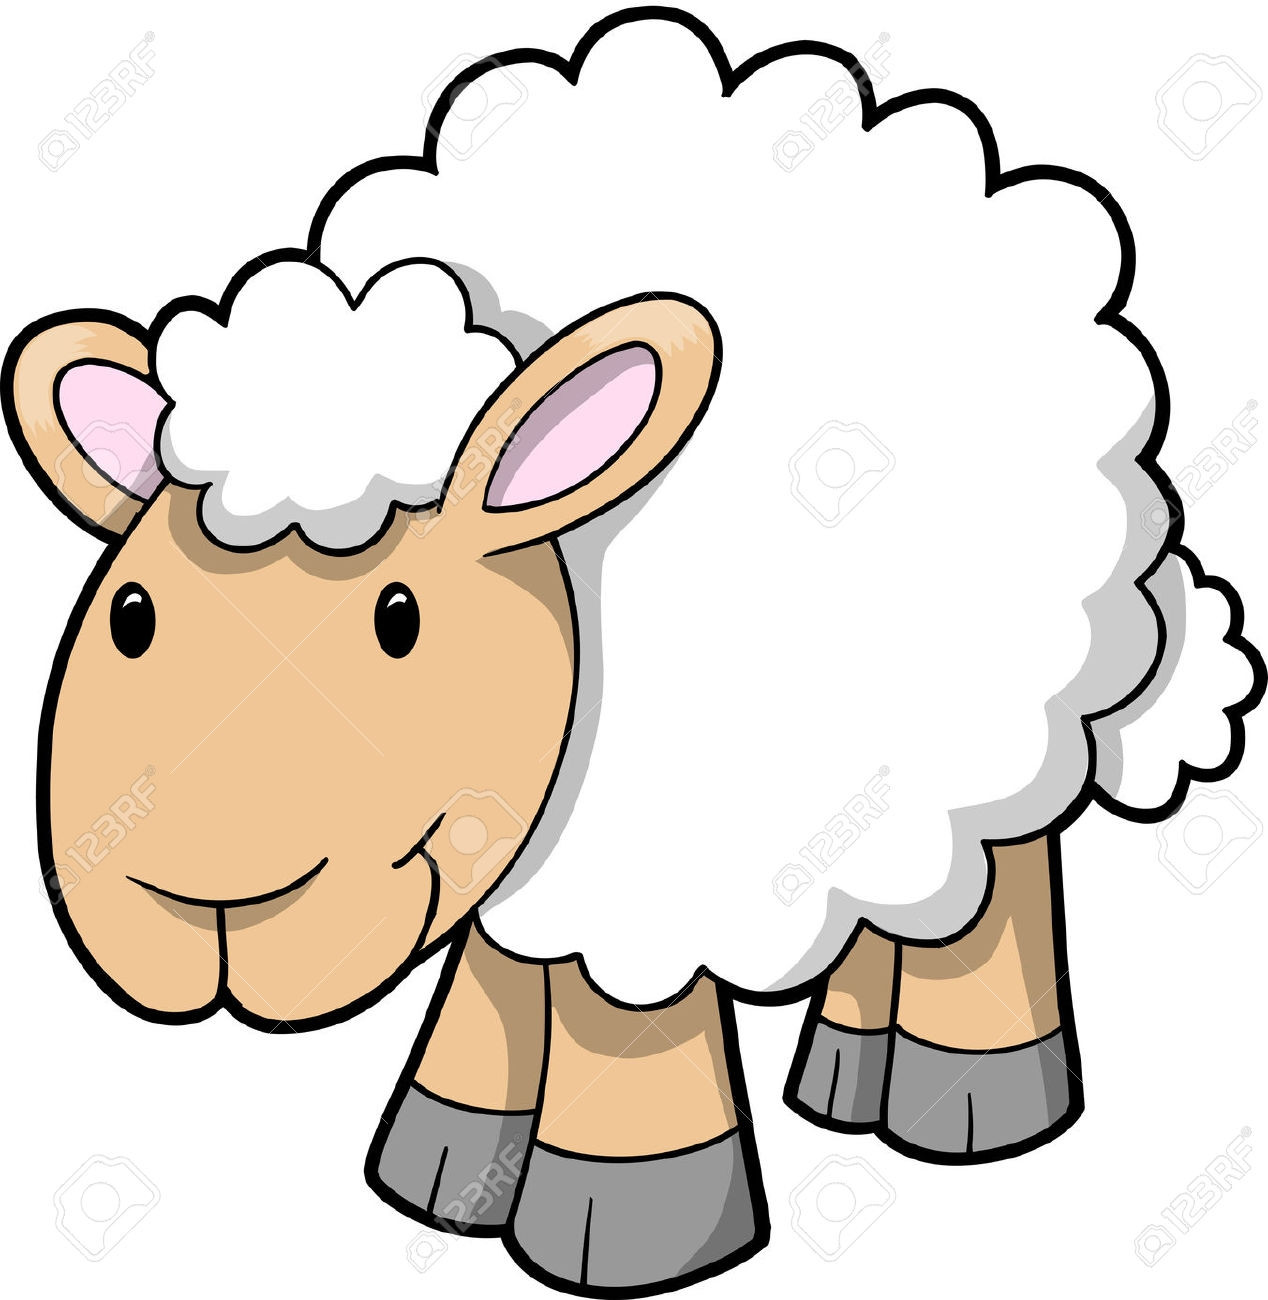 Clip art black and. Sheep clipart